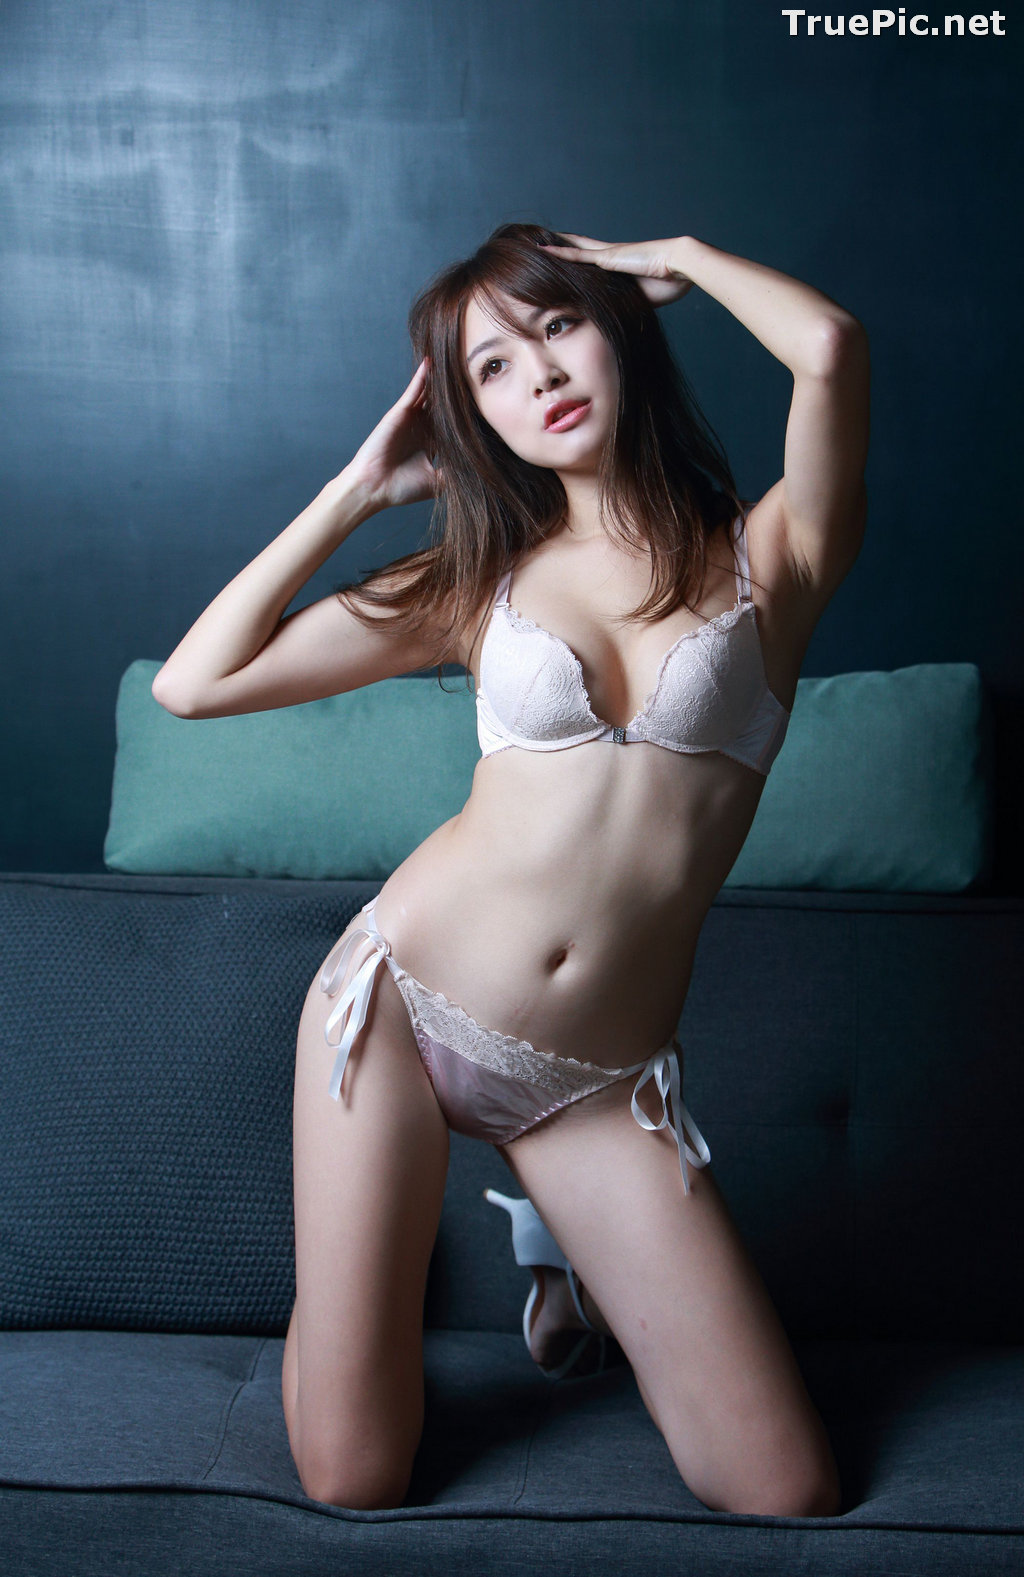 Image Taiwanese Model - Ash Ley - Sexy Girl and White Lingerie - TruePic.net - Picture-7